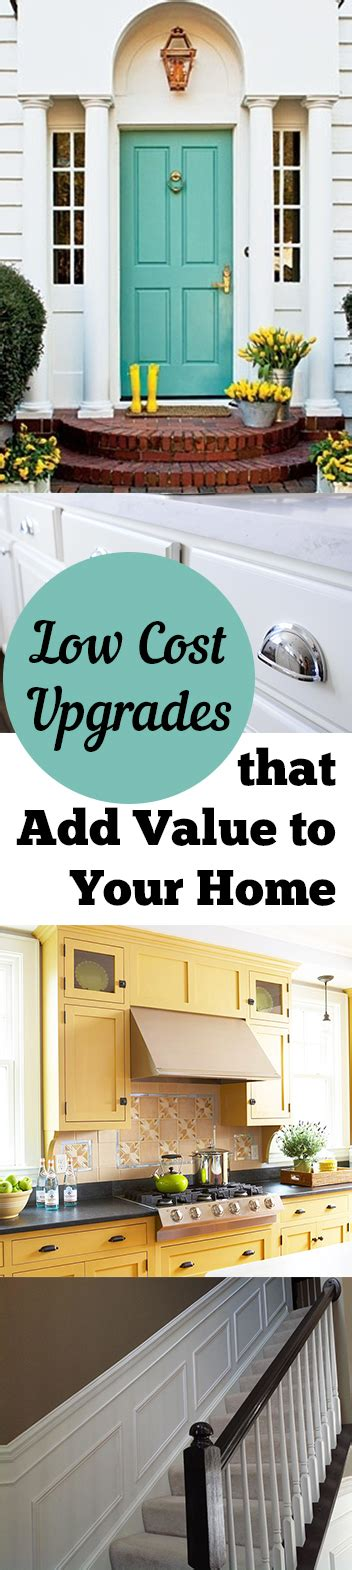 low cost upgrades that add 28 images duct low cost